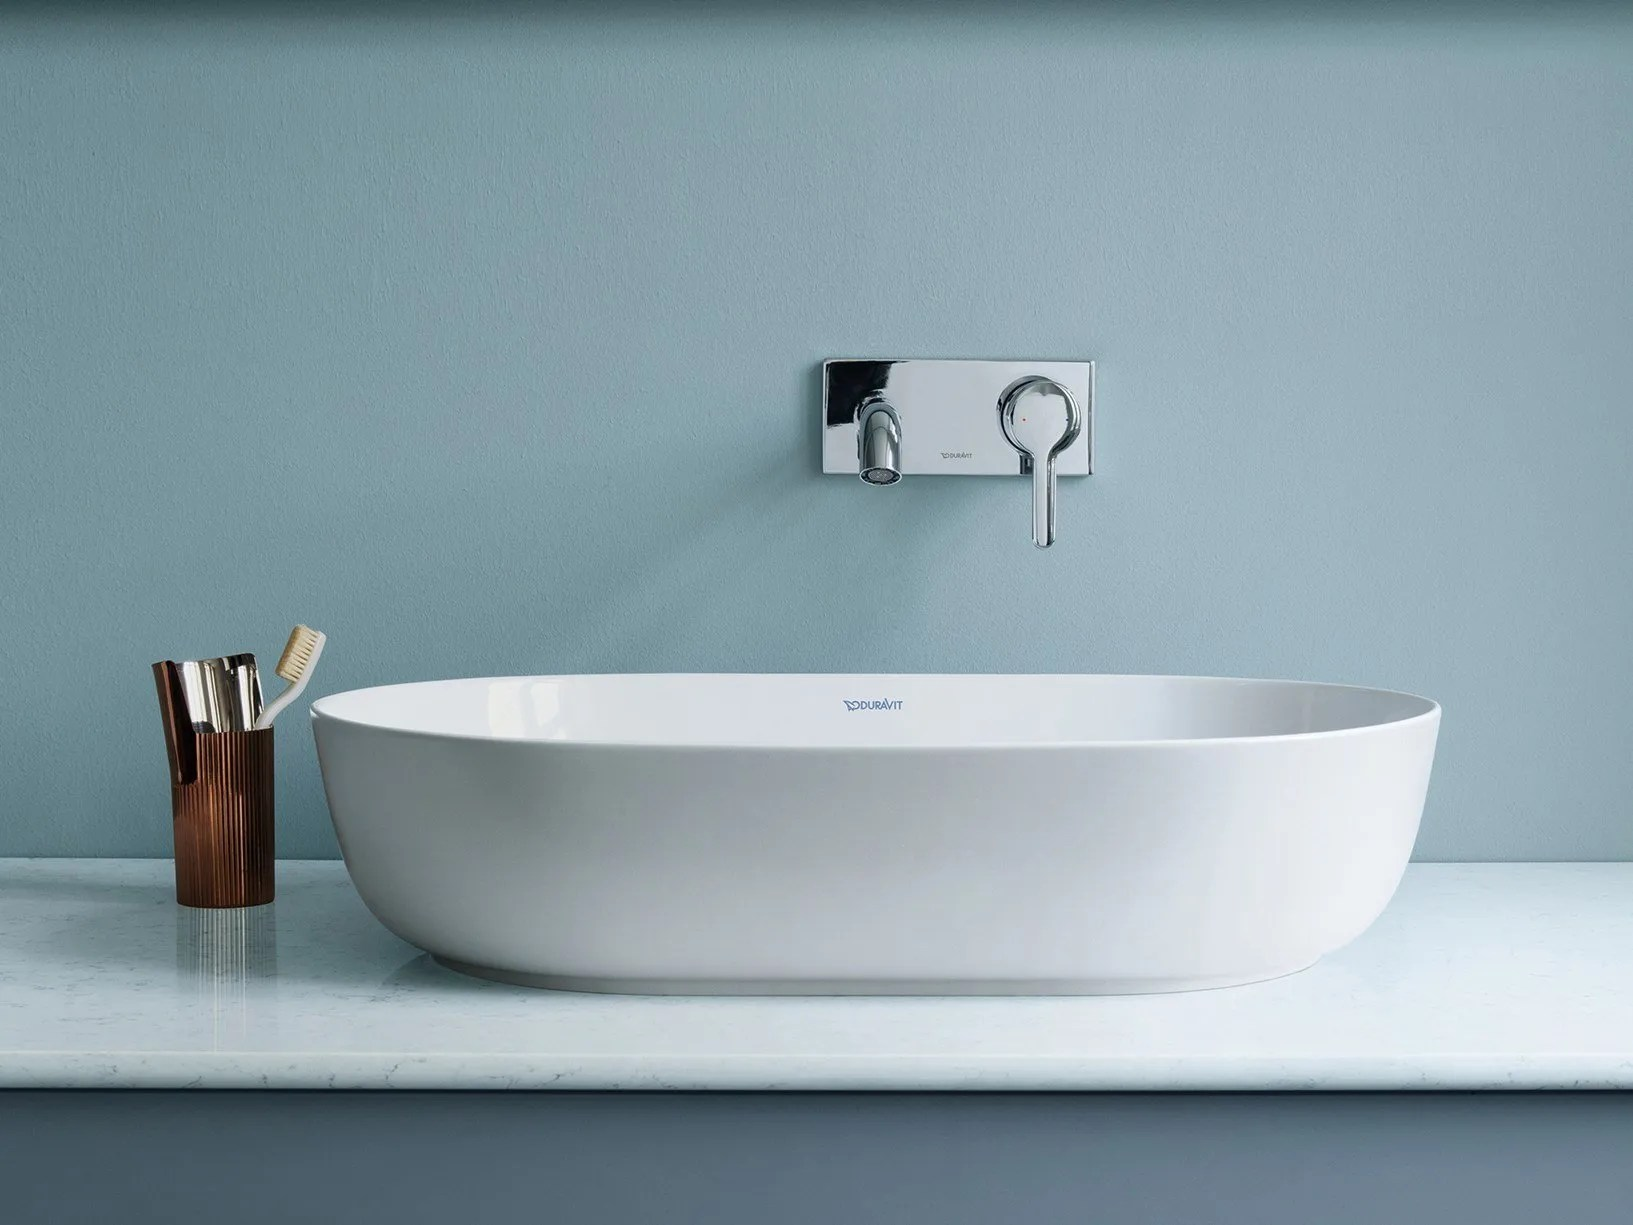 Duravit Waschtischunterschrank Duravit Making A Big Impression In Small Spaces